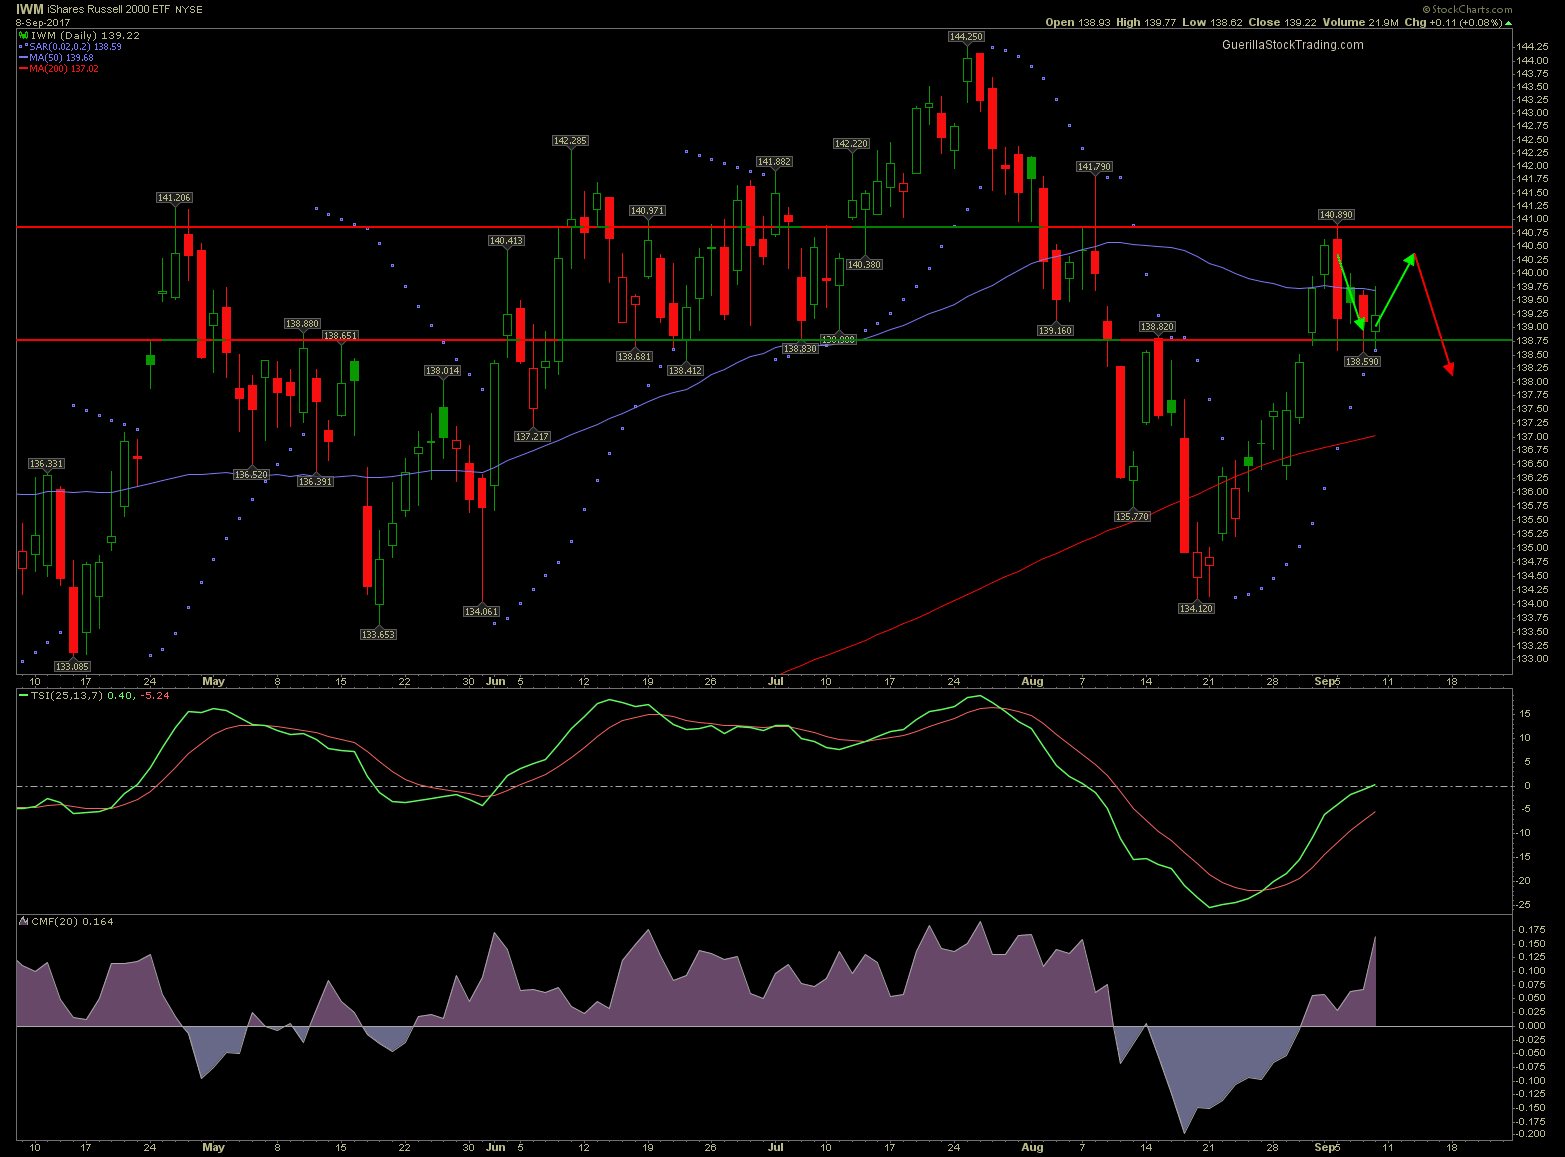 business iwm chart - Russell 2000 Testing Pivotal Support Level